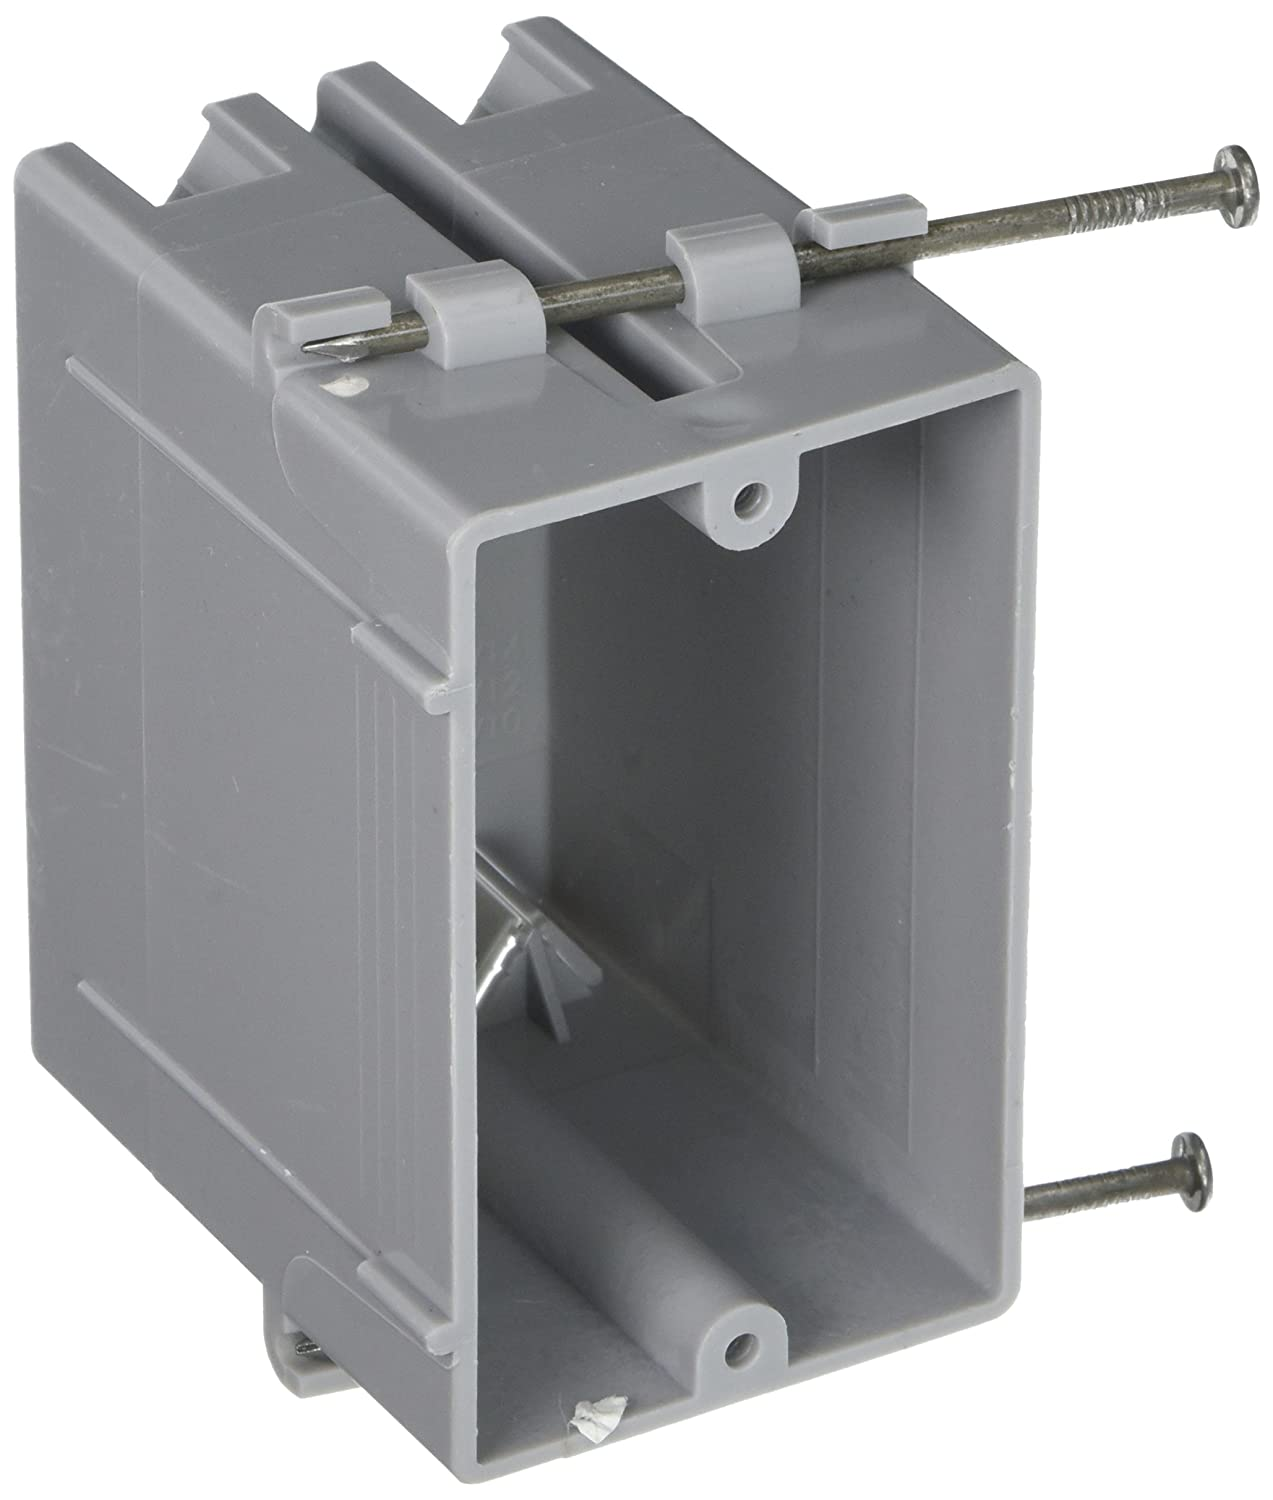 Hubbell Raco 7820RAC 3 1 4 Inch Deep Non Metallic Cable Electrical Box with 4 x NMSC Clamps Gang and 2 x Captive Nails 2 1 4 Inch x 3 19 32 Inch